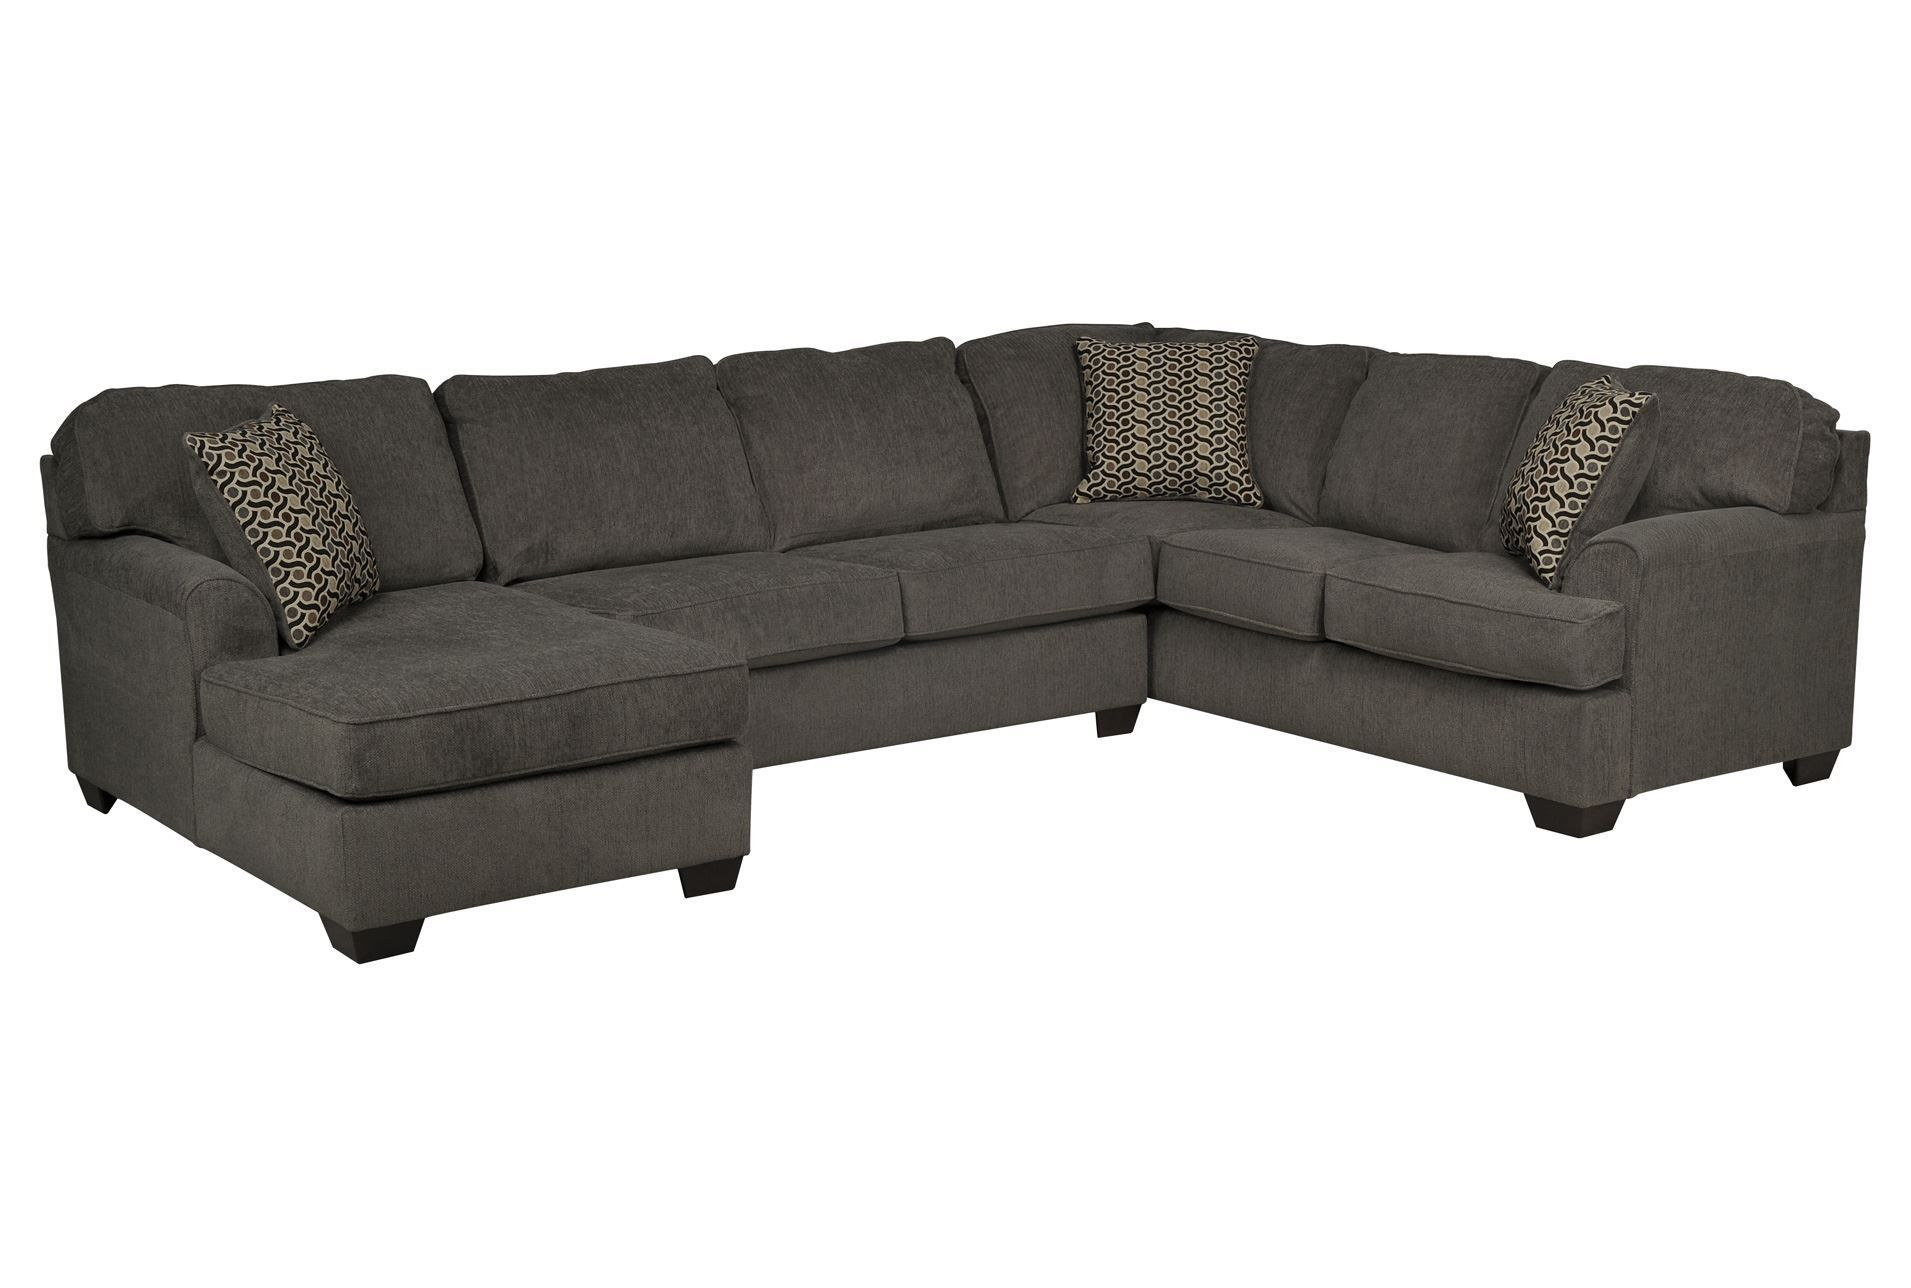 Loric Smoke 3 Piece Sectional W/Laf Chaise - Signature